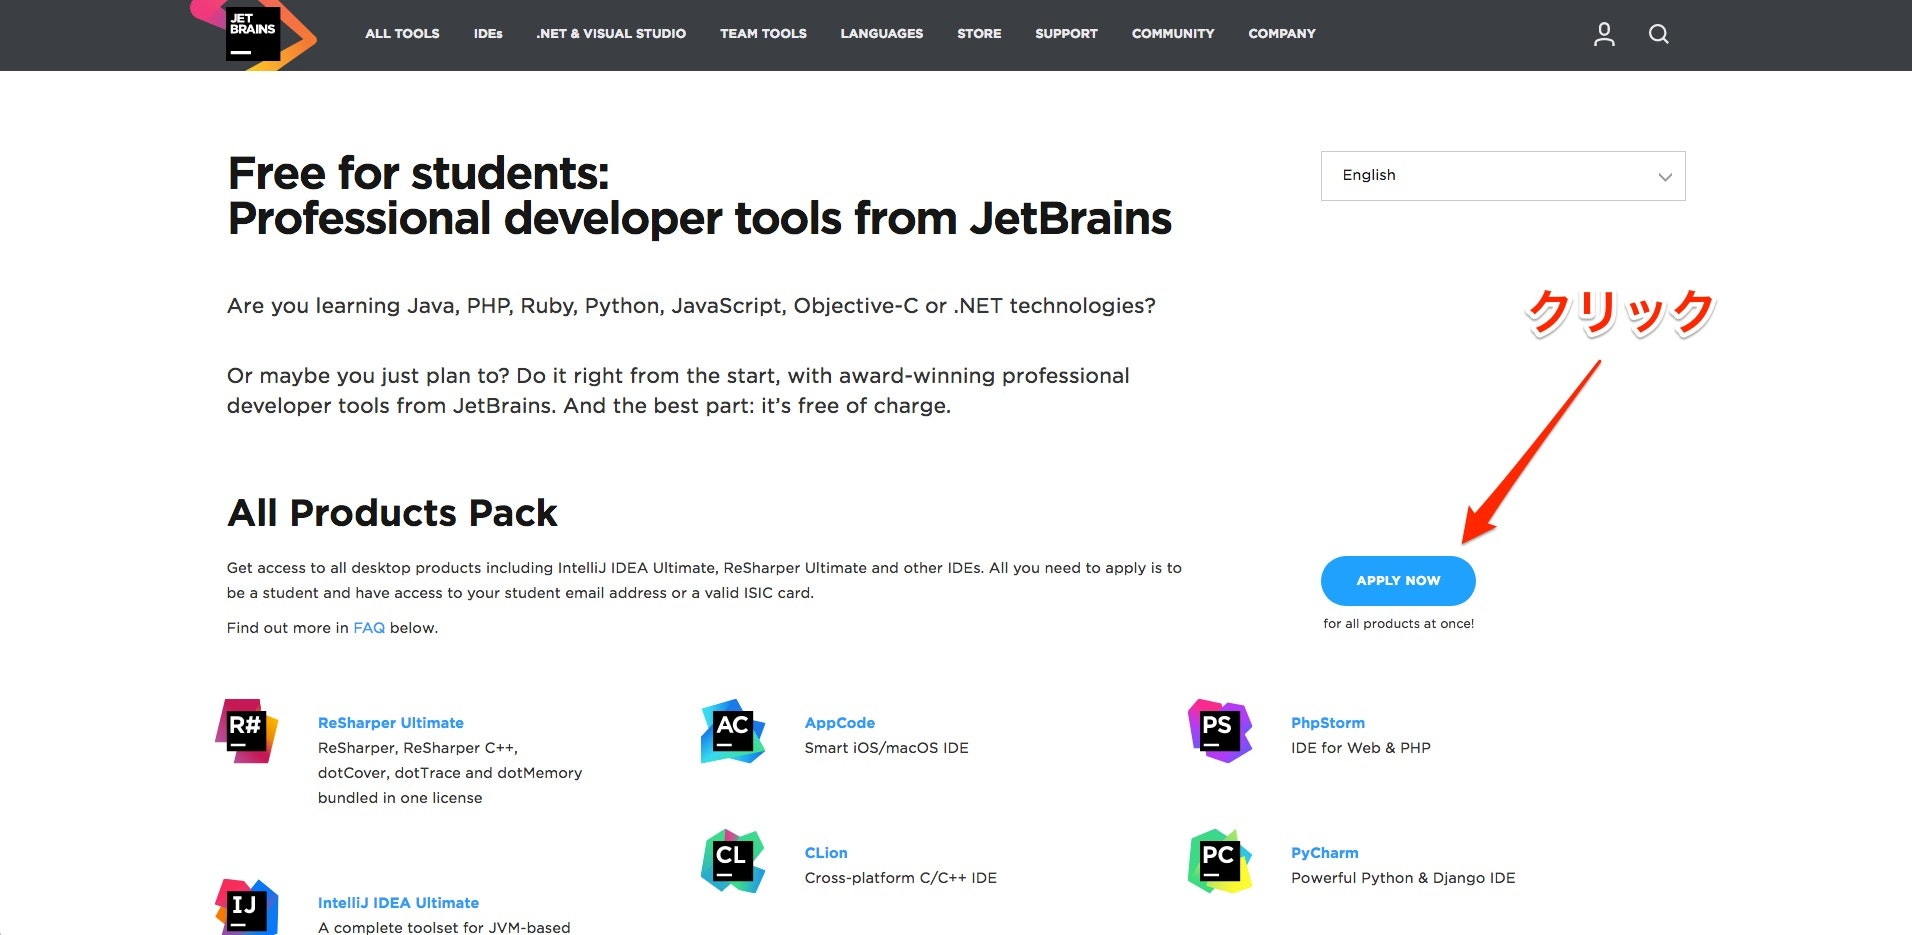 Free_for_Students__Professional_Developer_Tools_from_JetBrains.jpg